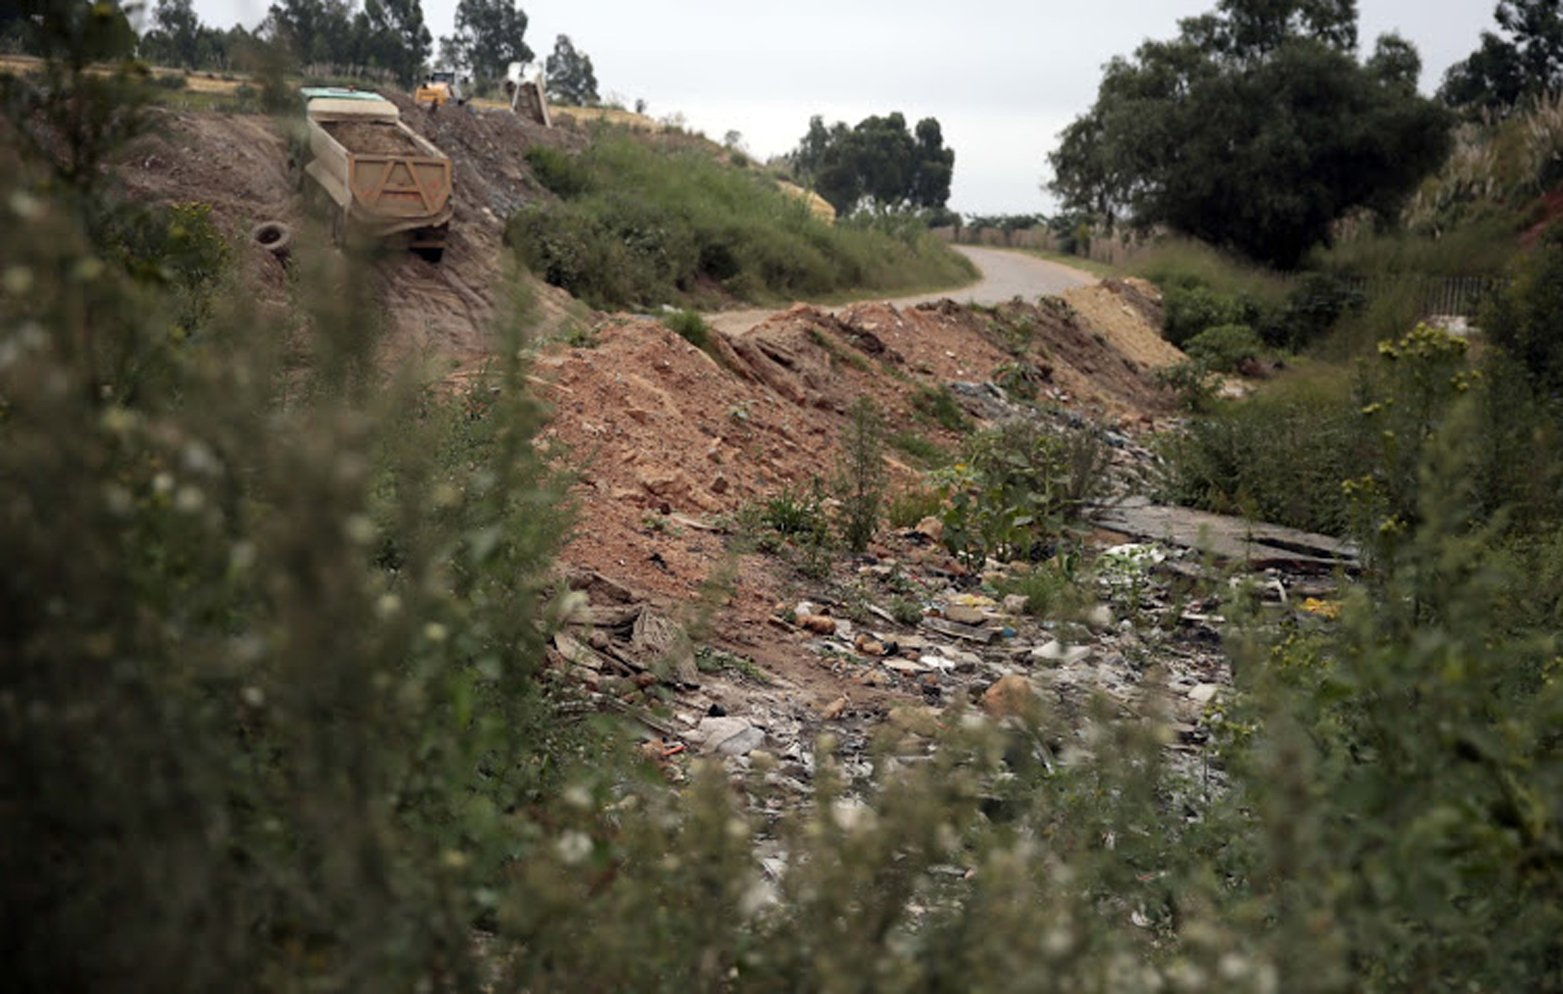 GERMISTON, SOUTH AFRICA MARCH 11: The dumpsite where a 3-year-old boys body was found after allegedly being tormented and killed by two boys, grieves on March 11, 2019 in Germiston, South Africa. Two children aged seven and eight stand accused of killing the young boy. They allegedly confessed to police how they assaulted him with stones, tied him up with a rope and pushed him over the edge of the dumpsite. (Photo by Gallo Images/Sowetan/Sebabatso Mosamo)